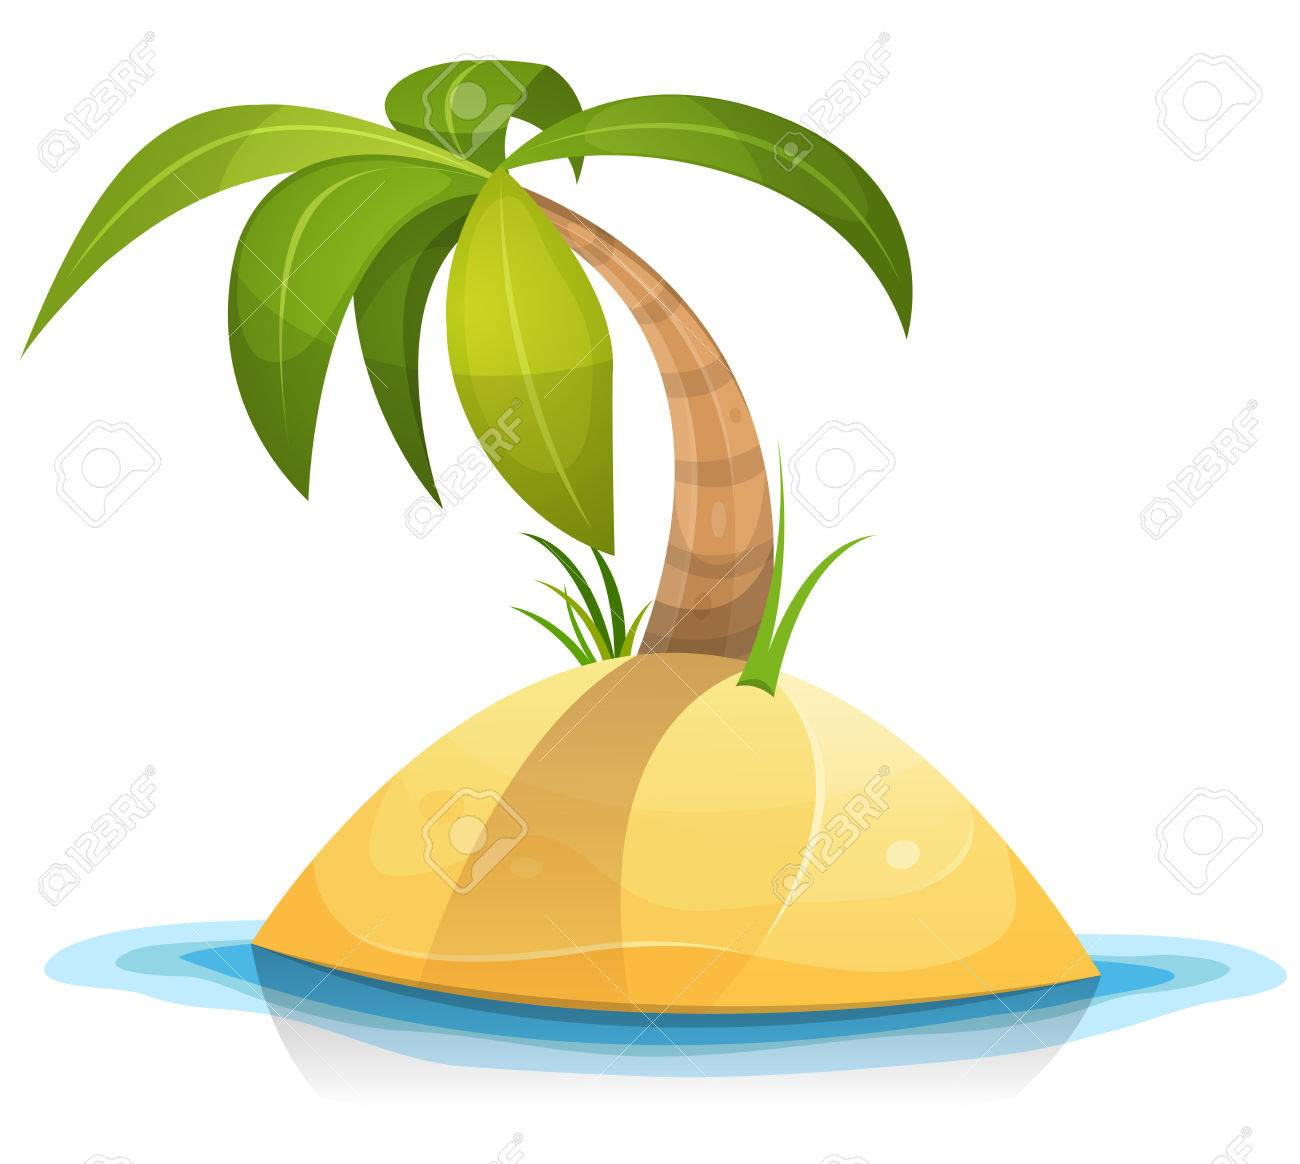 illustration of a cartoon tropical palm tree or coconut on little